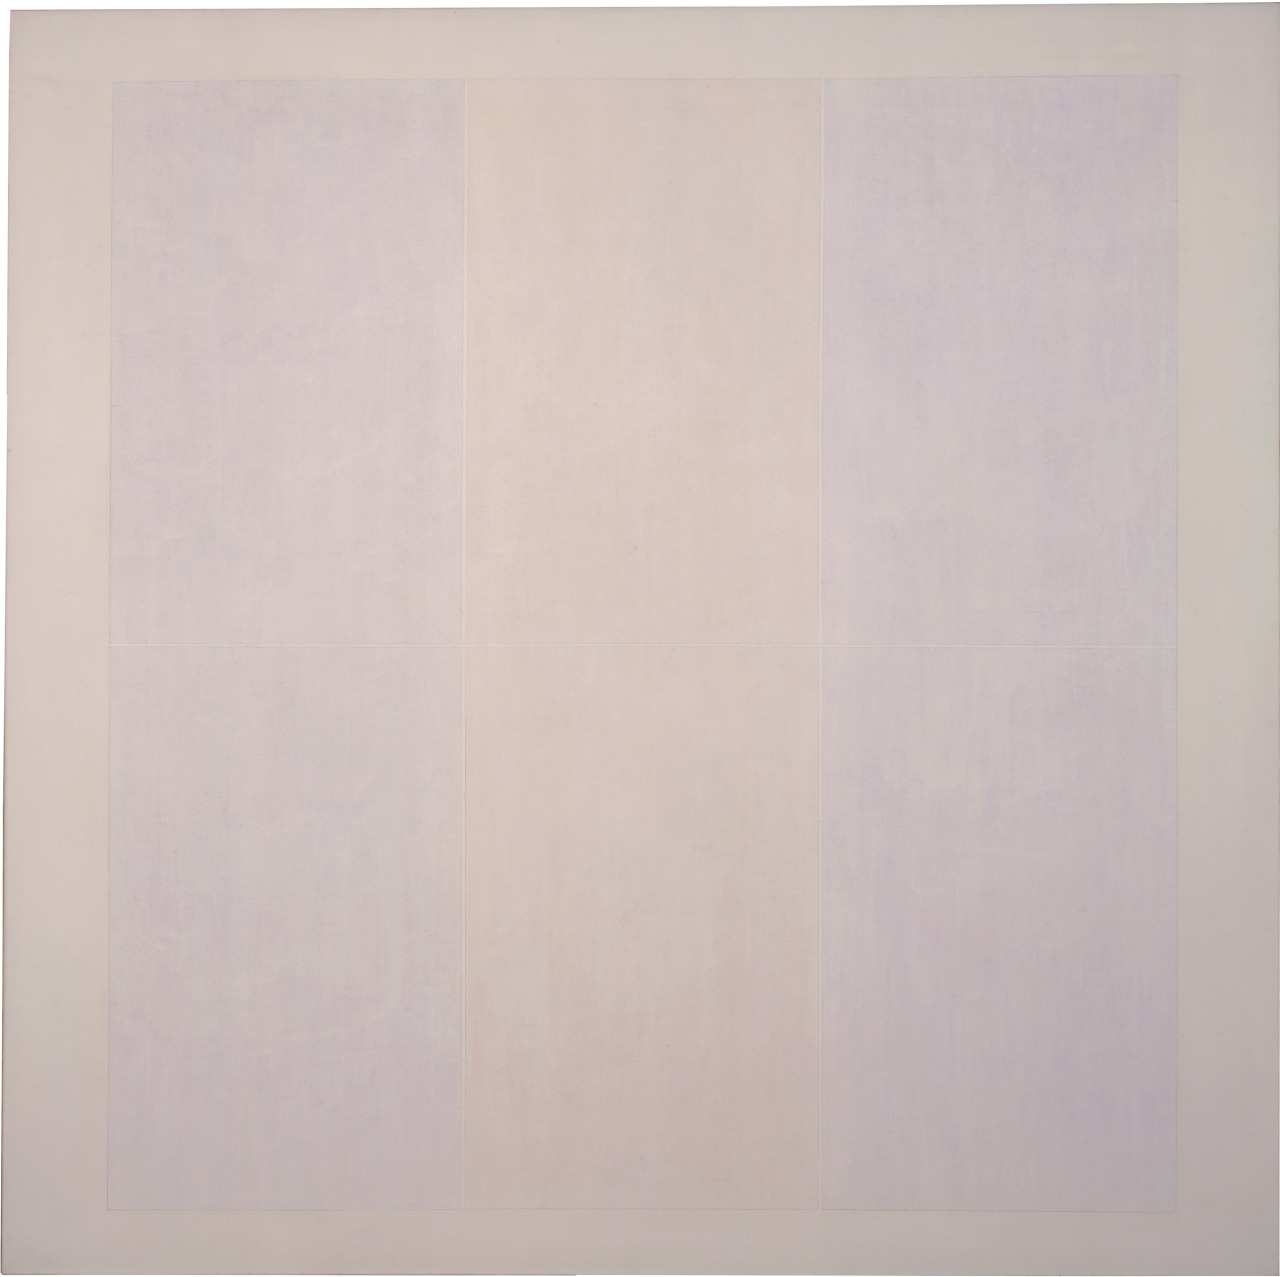 Untitled #3, 1974, acrylic, graphite and plaster on canvas